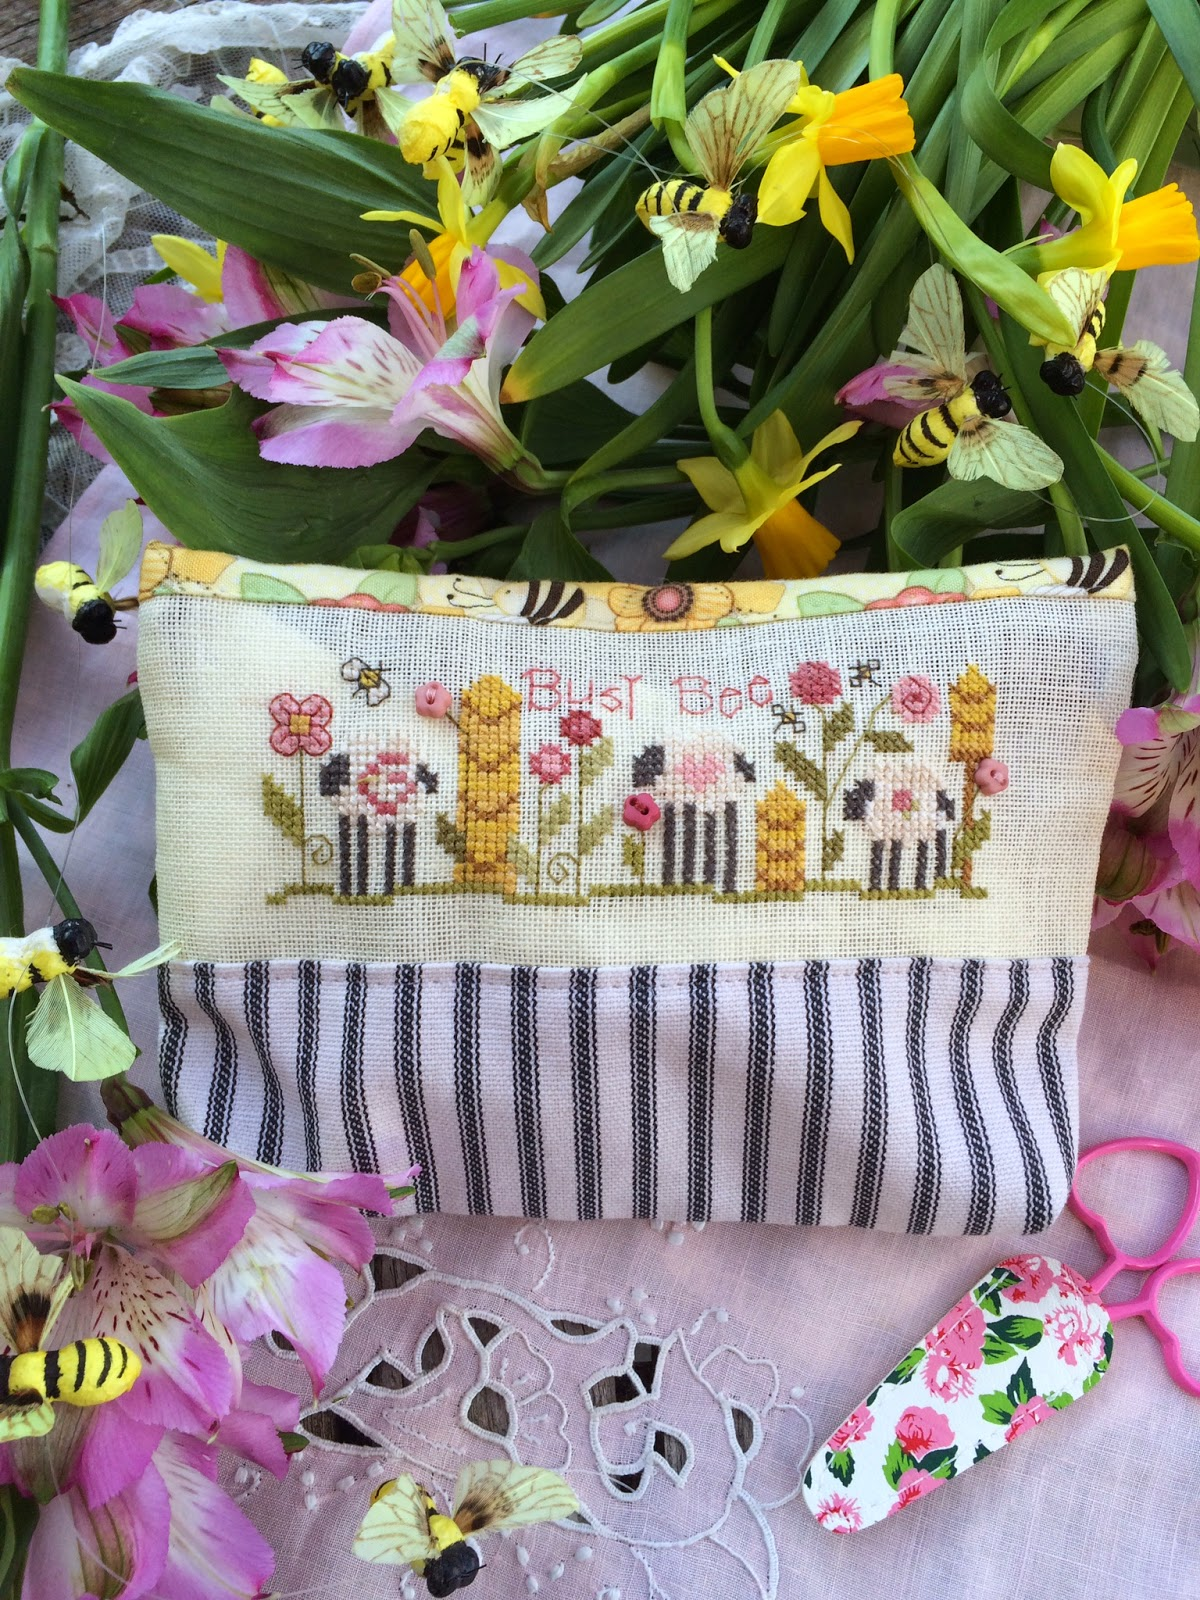 Shepherd's Bush - Busy Bee Bag - Cross Stitch Kit-Shepherds Bush, Busy Bee Bag, sheep, spring, stitching bag, Cross Stitch Kit